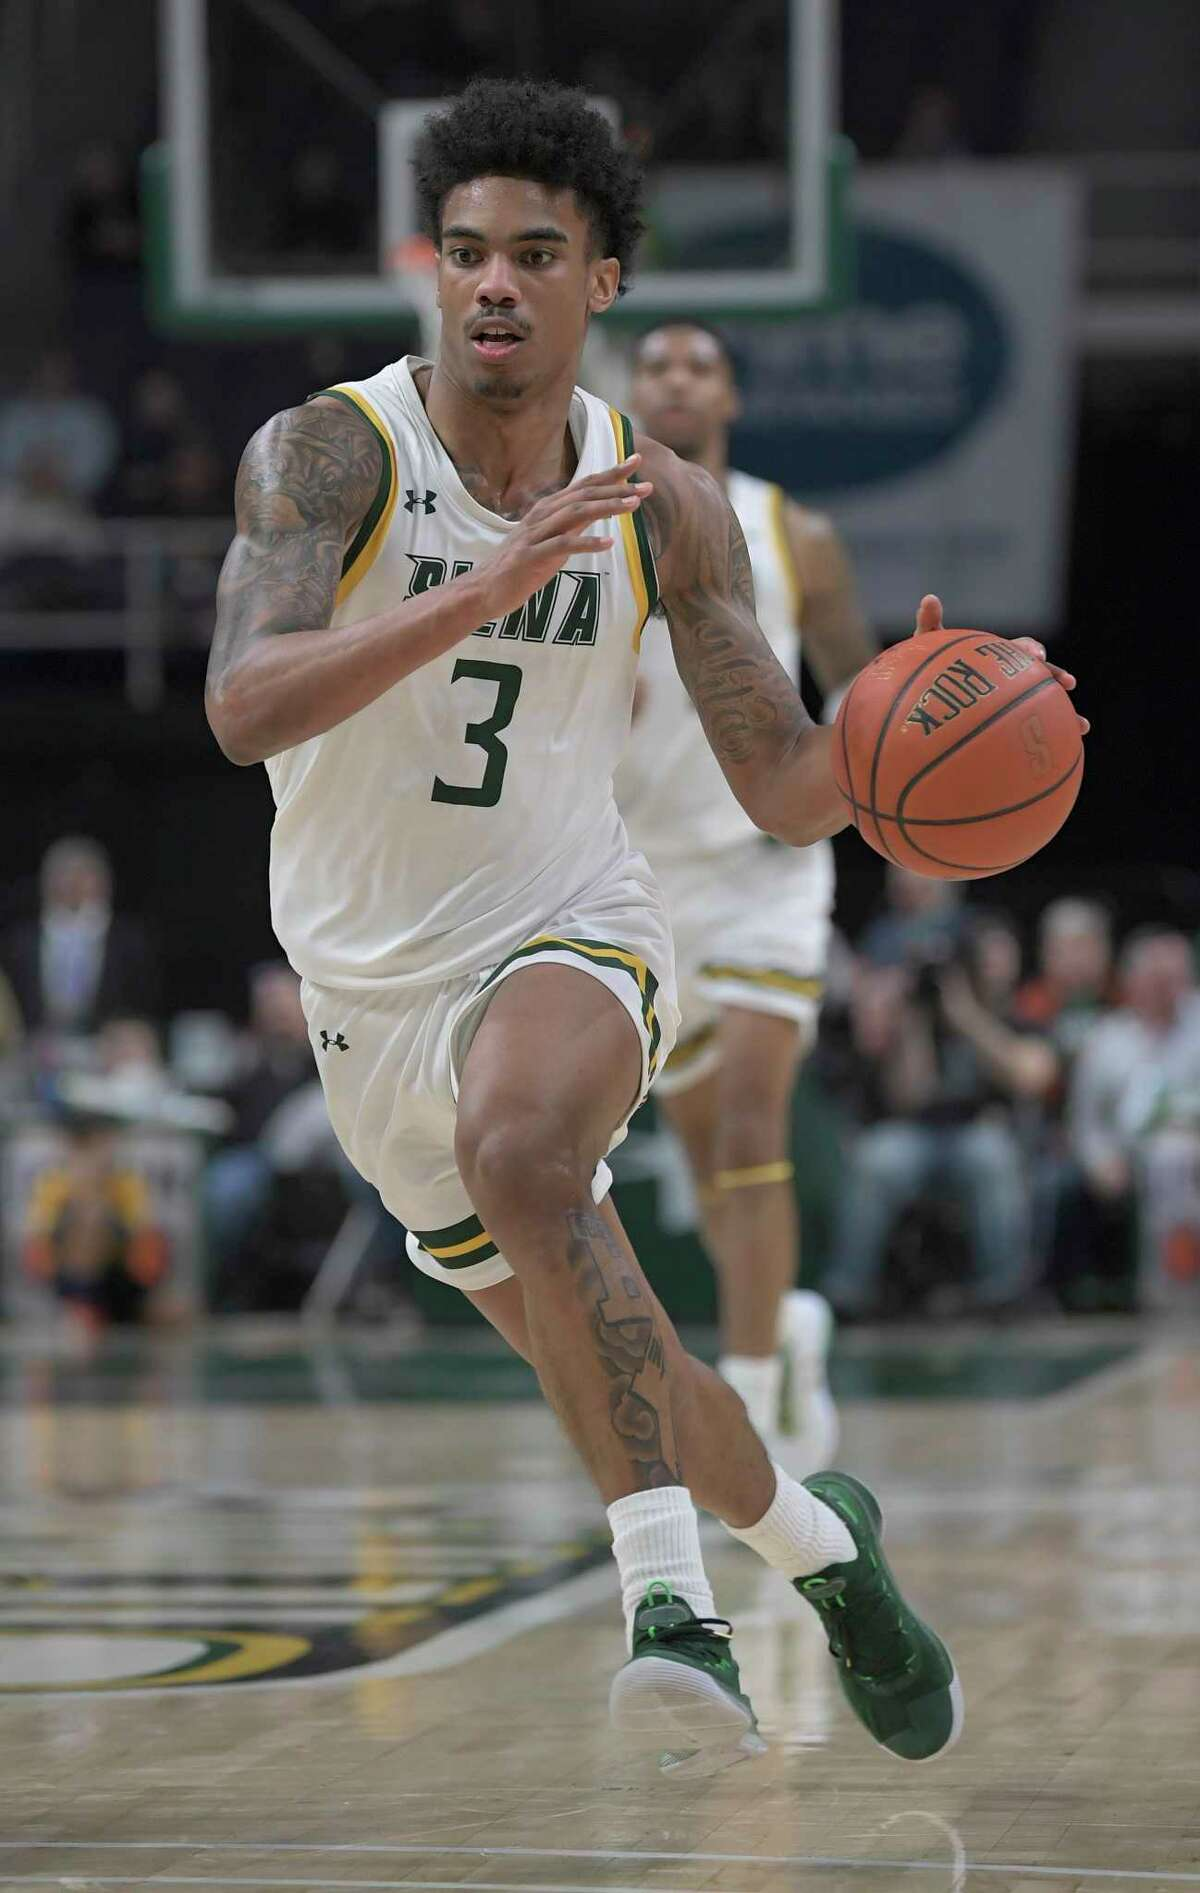 Siena guard Manny Camper (3) moves the ball against Bucknell during the first half of an NCAA basketball game Saturday, Dec. 21, 2019, in Albany, N.Y. (Hans Pennink / Special to the Times Union) ORG XMIT: 122219_siena_HP115